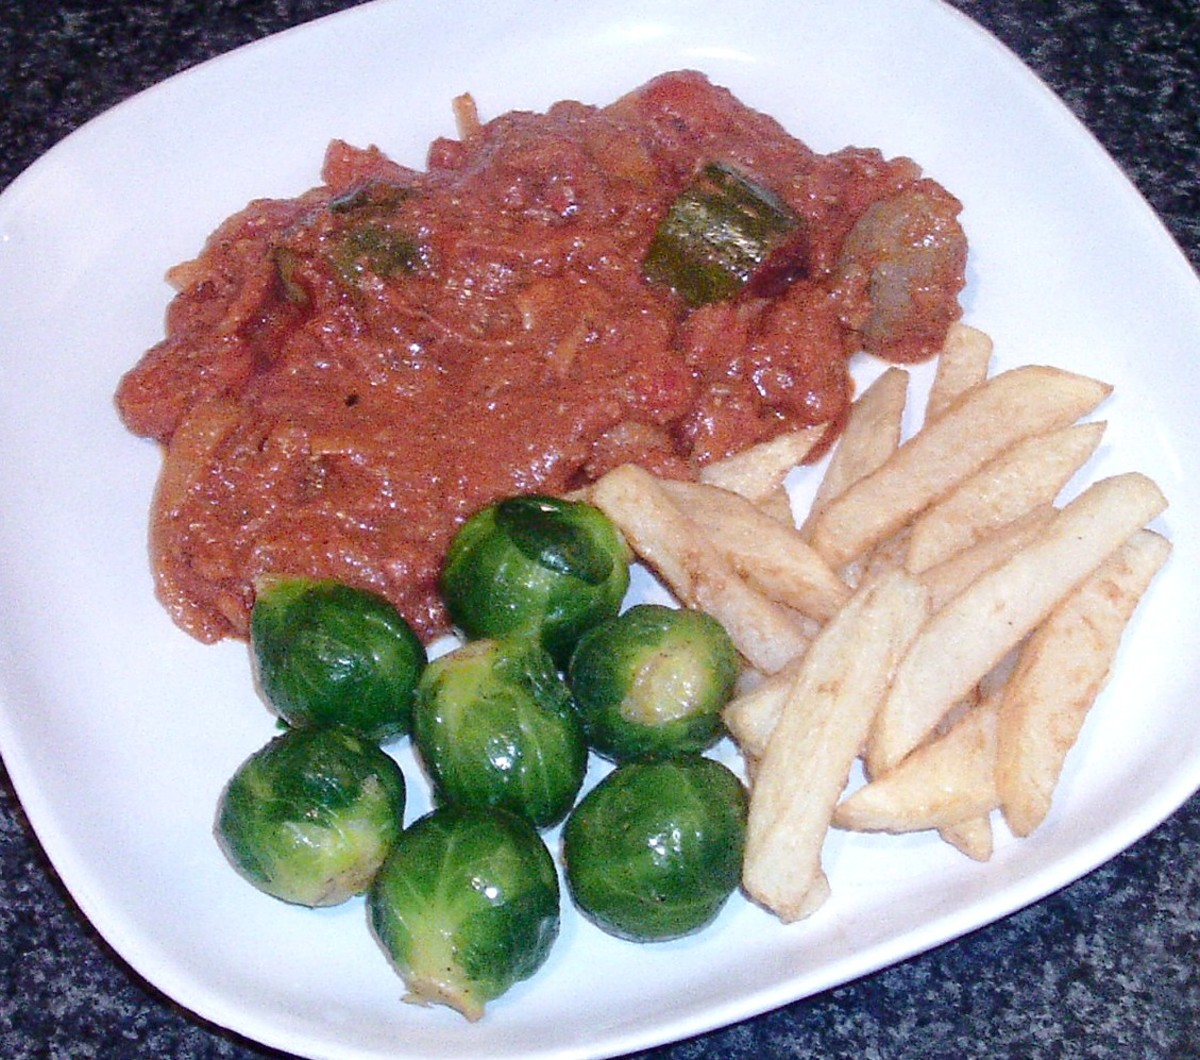 Venison Sausage, Lamb Liver and Mediterranean Vegetable Stew Served With Brussels Sprouts and Chips